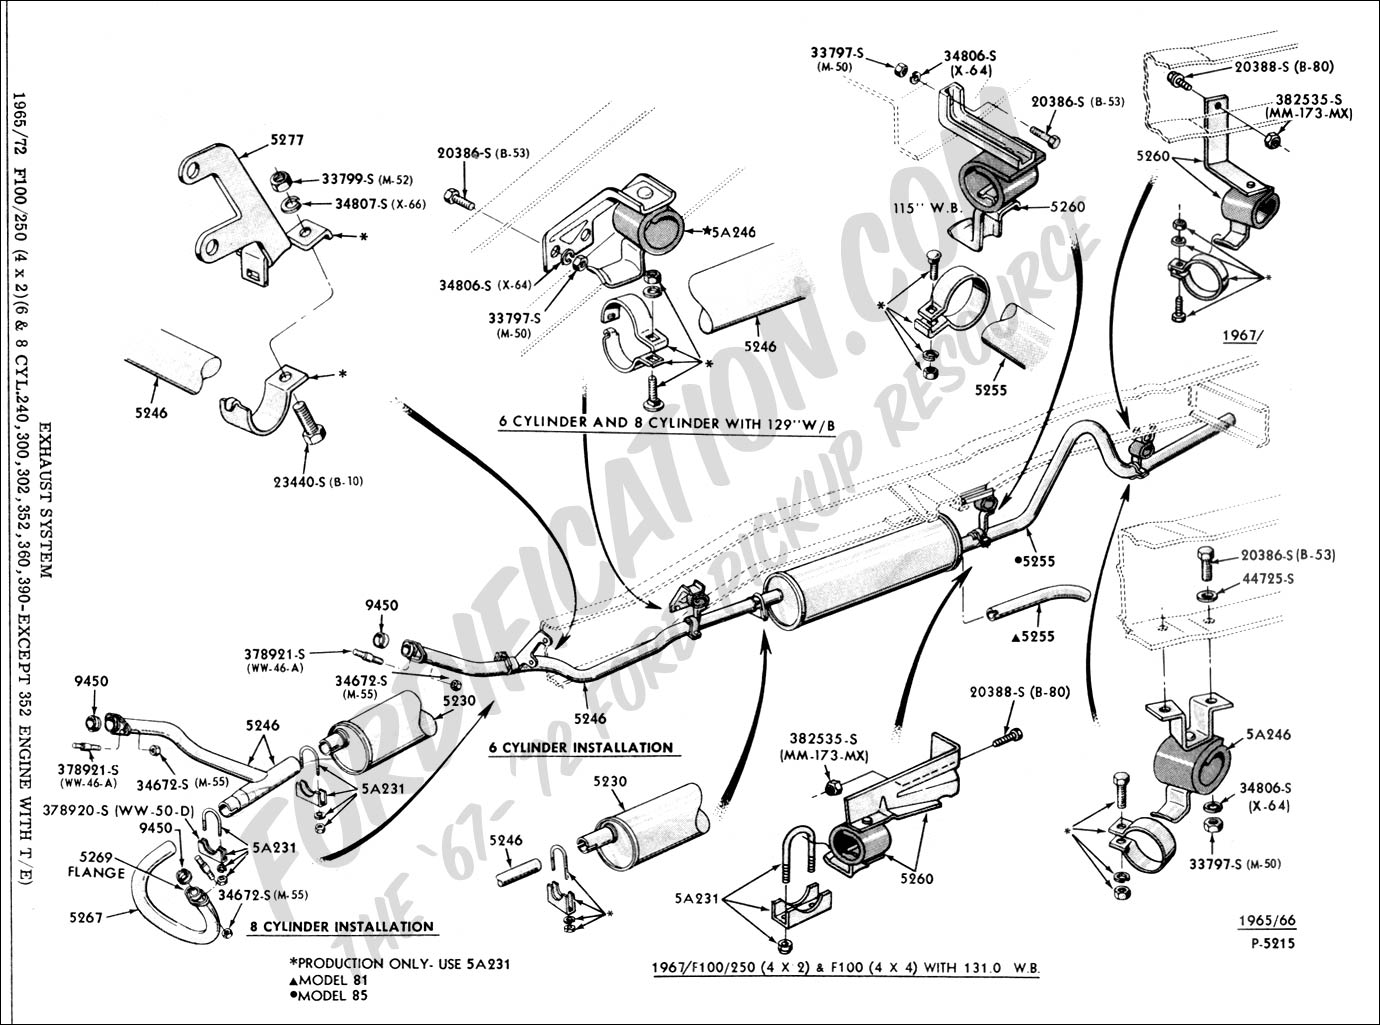 1985 Ford F 150 Trailer Wiring Library 2005 F150 Diagram Truck Technical Drawings And Schematics Section E F250 Alternator